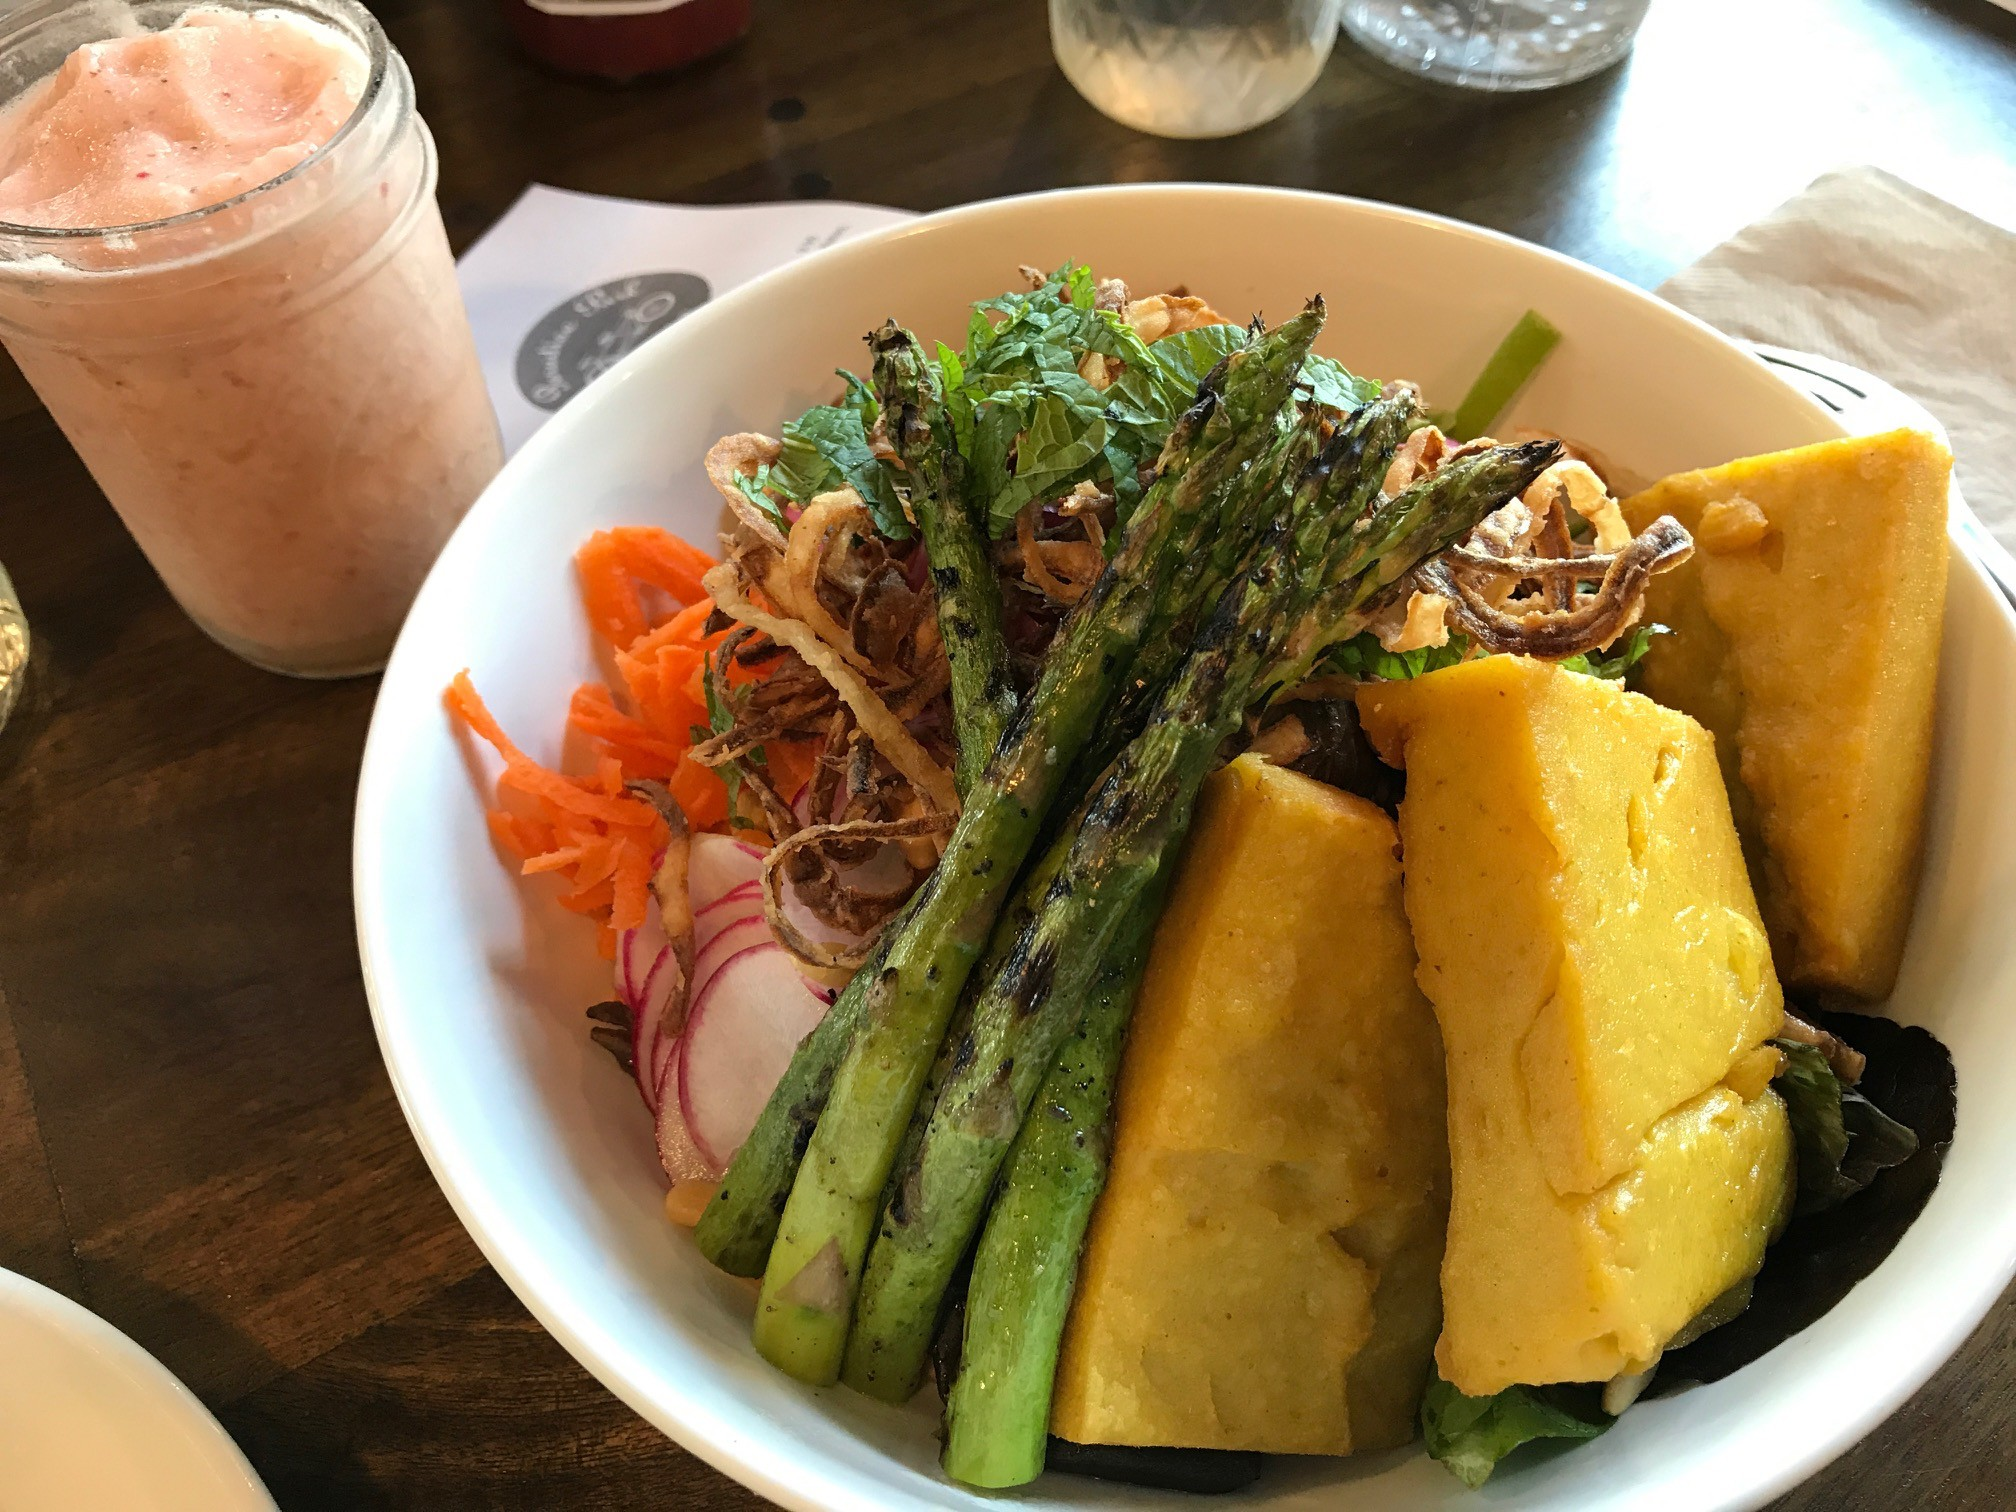 paradise park cafe brings all-day dining to oakland | food & drink